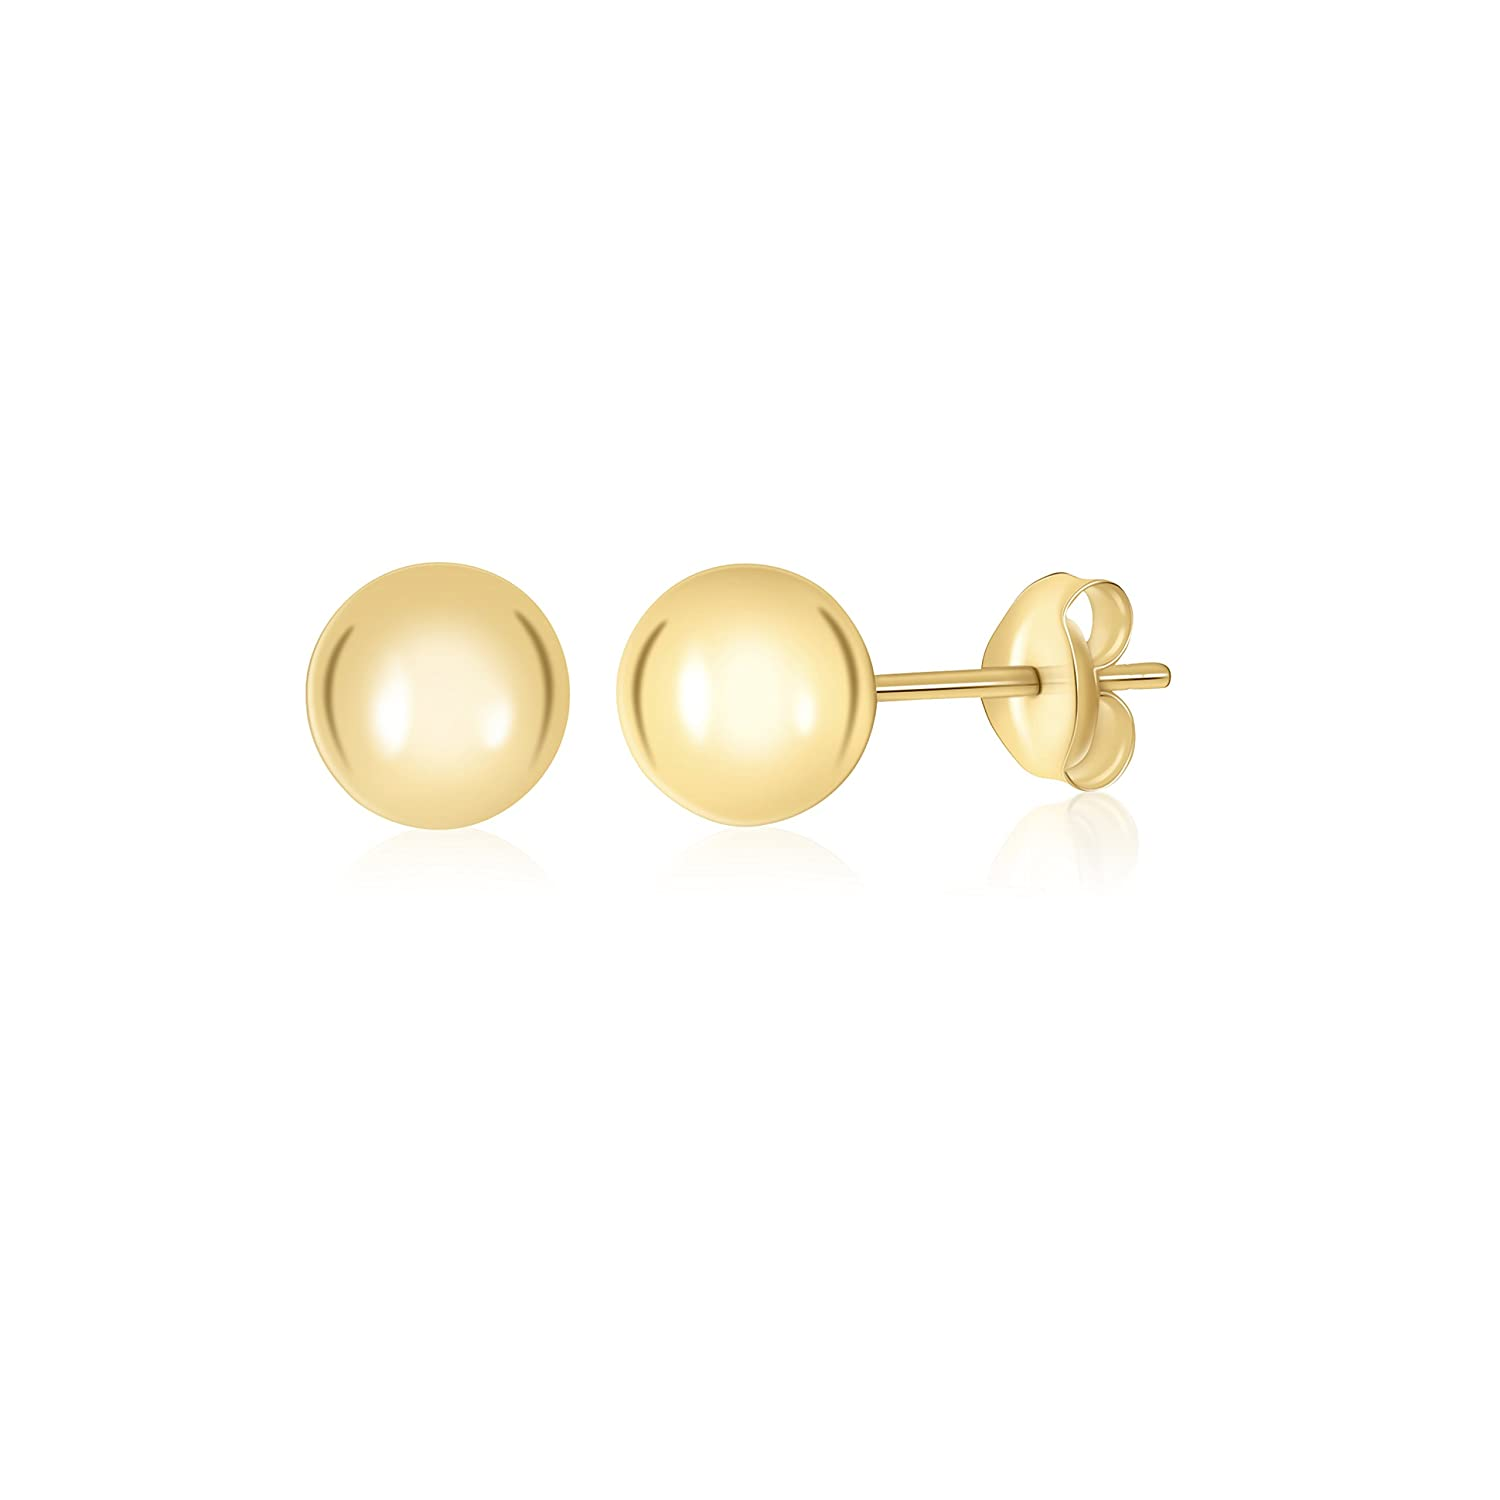 Gold High Polished Shiny Round Ball Post Stud Earrings Massete ZSBJ-1020-LW05-10R